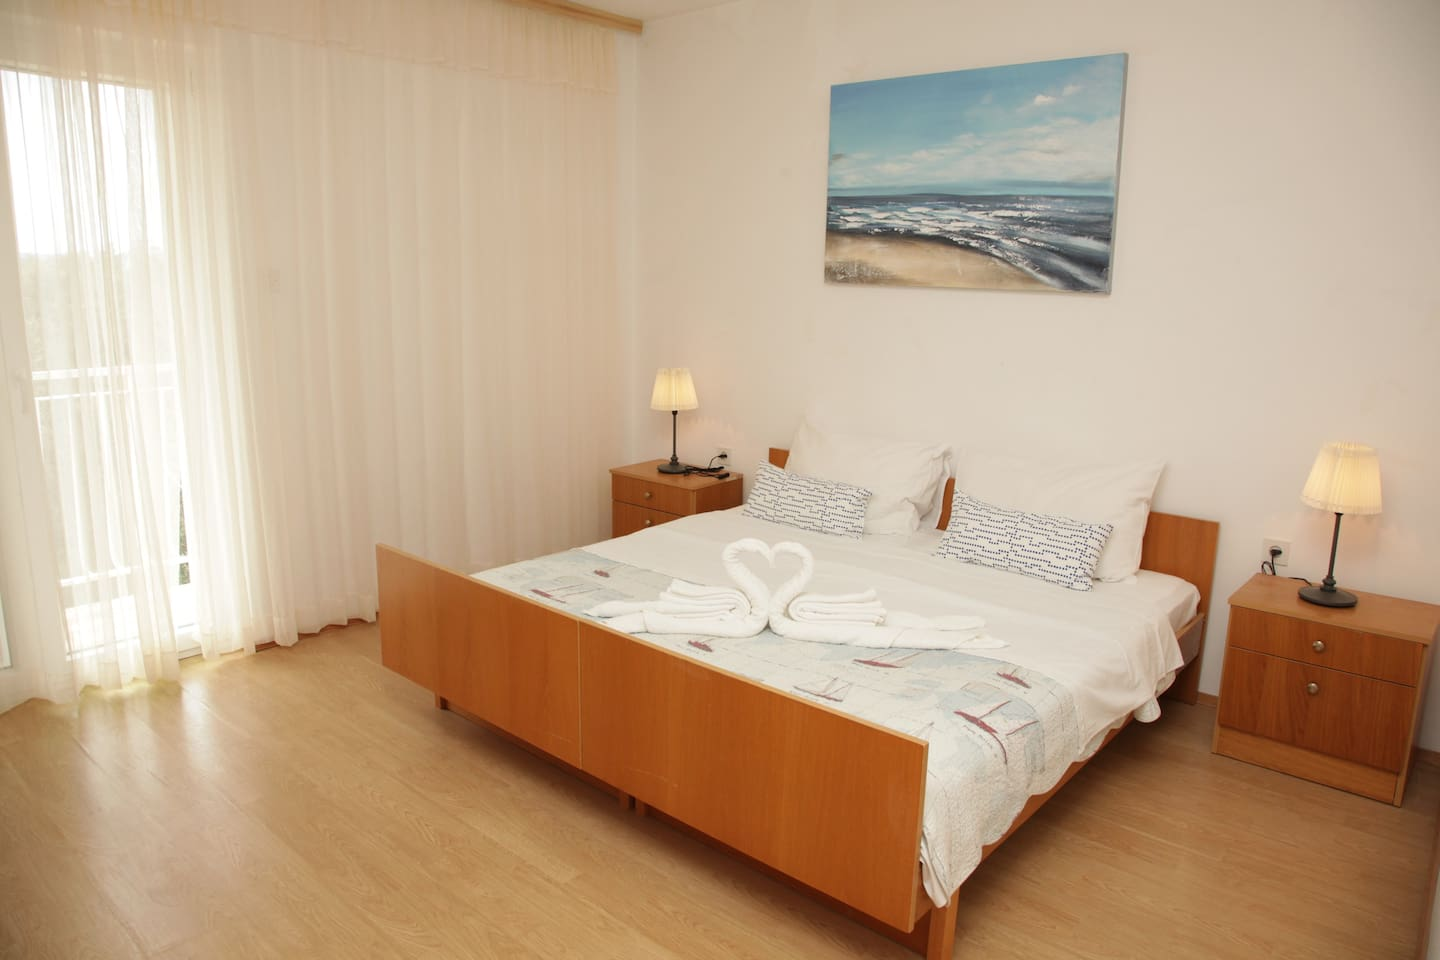 Bedroom with view of Adriatic sea